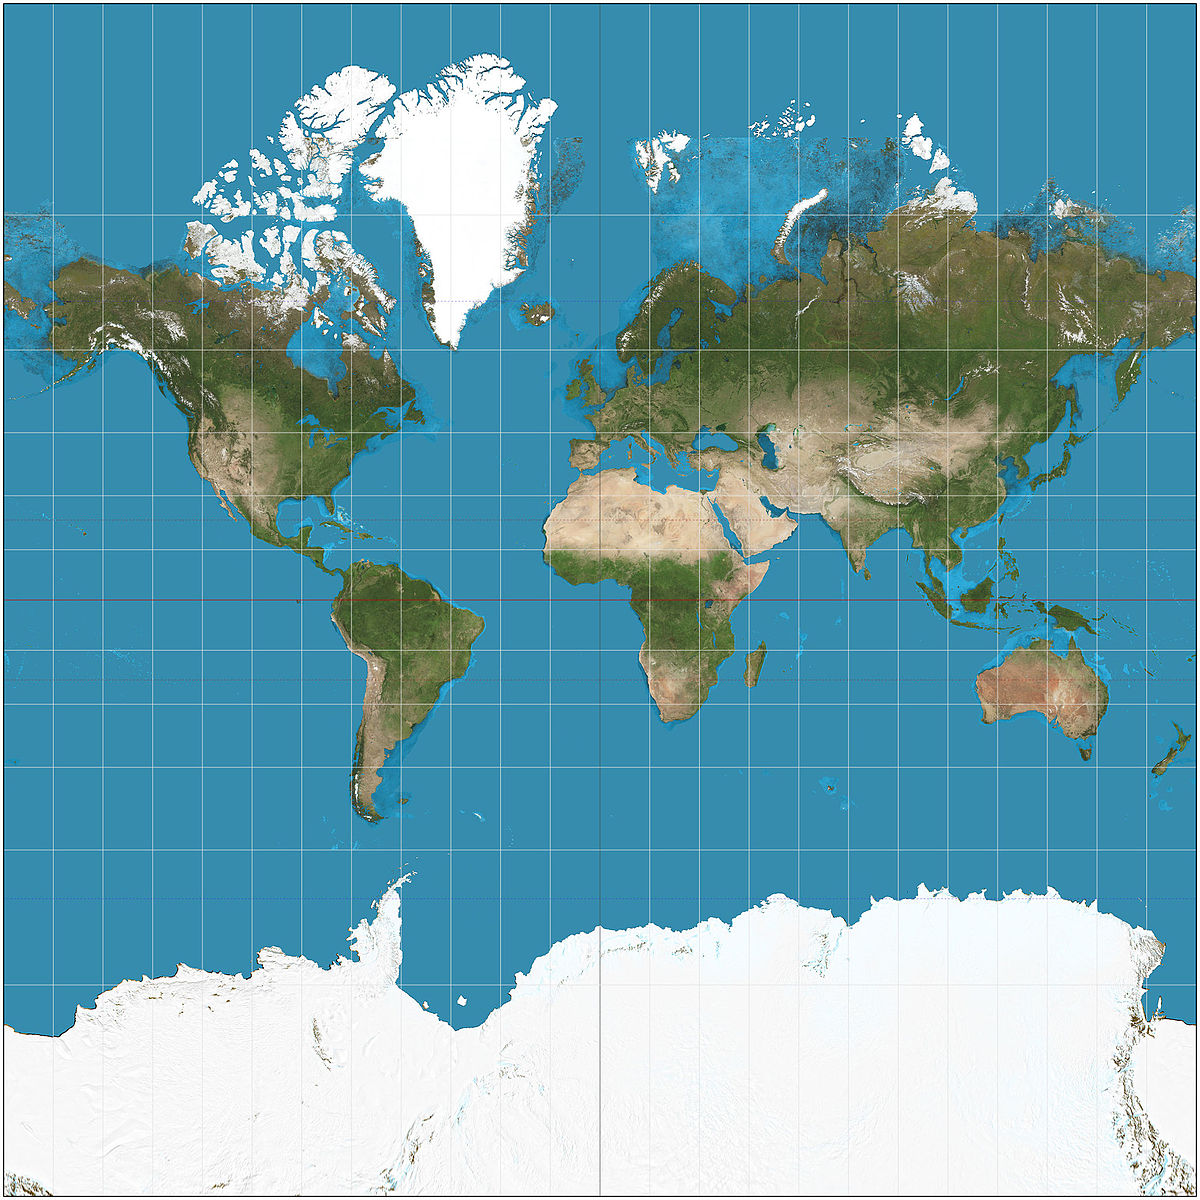 Mercator projection - Wikipedia on show me the mona lisa, show us map, show the earth, show map of russia, show me the map of africa, different maps of the world, micro countries of the world, show me north america map, show map of the world with countries, show me the world globe, show united states america map, show egypt on world map, map of da world, show hawaii on world map, show singapore on world map, show me the honey, may of the world, strange maps of the world, show me a world time zone map, show map dubai,